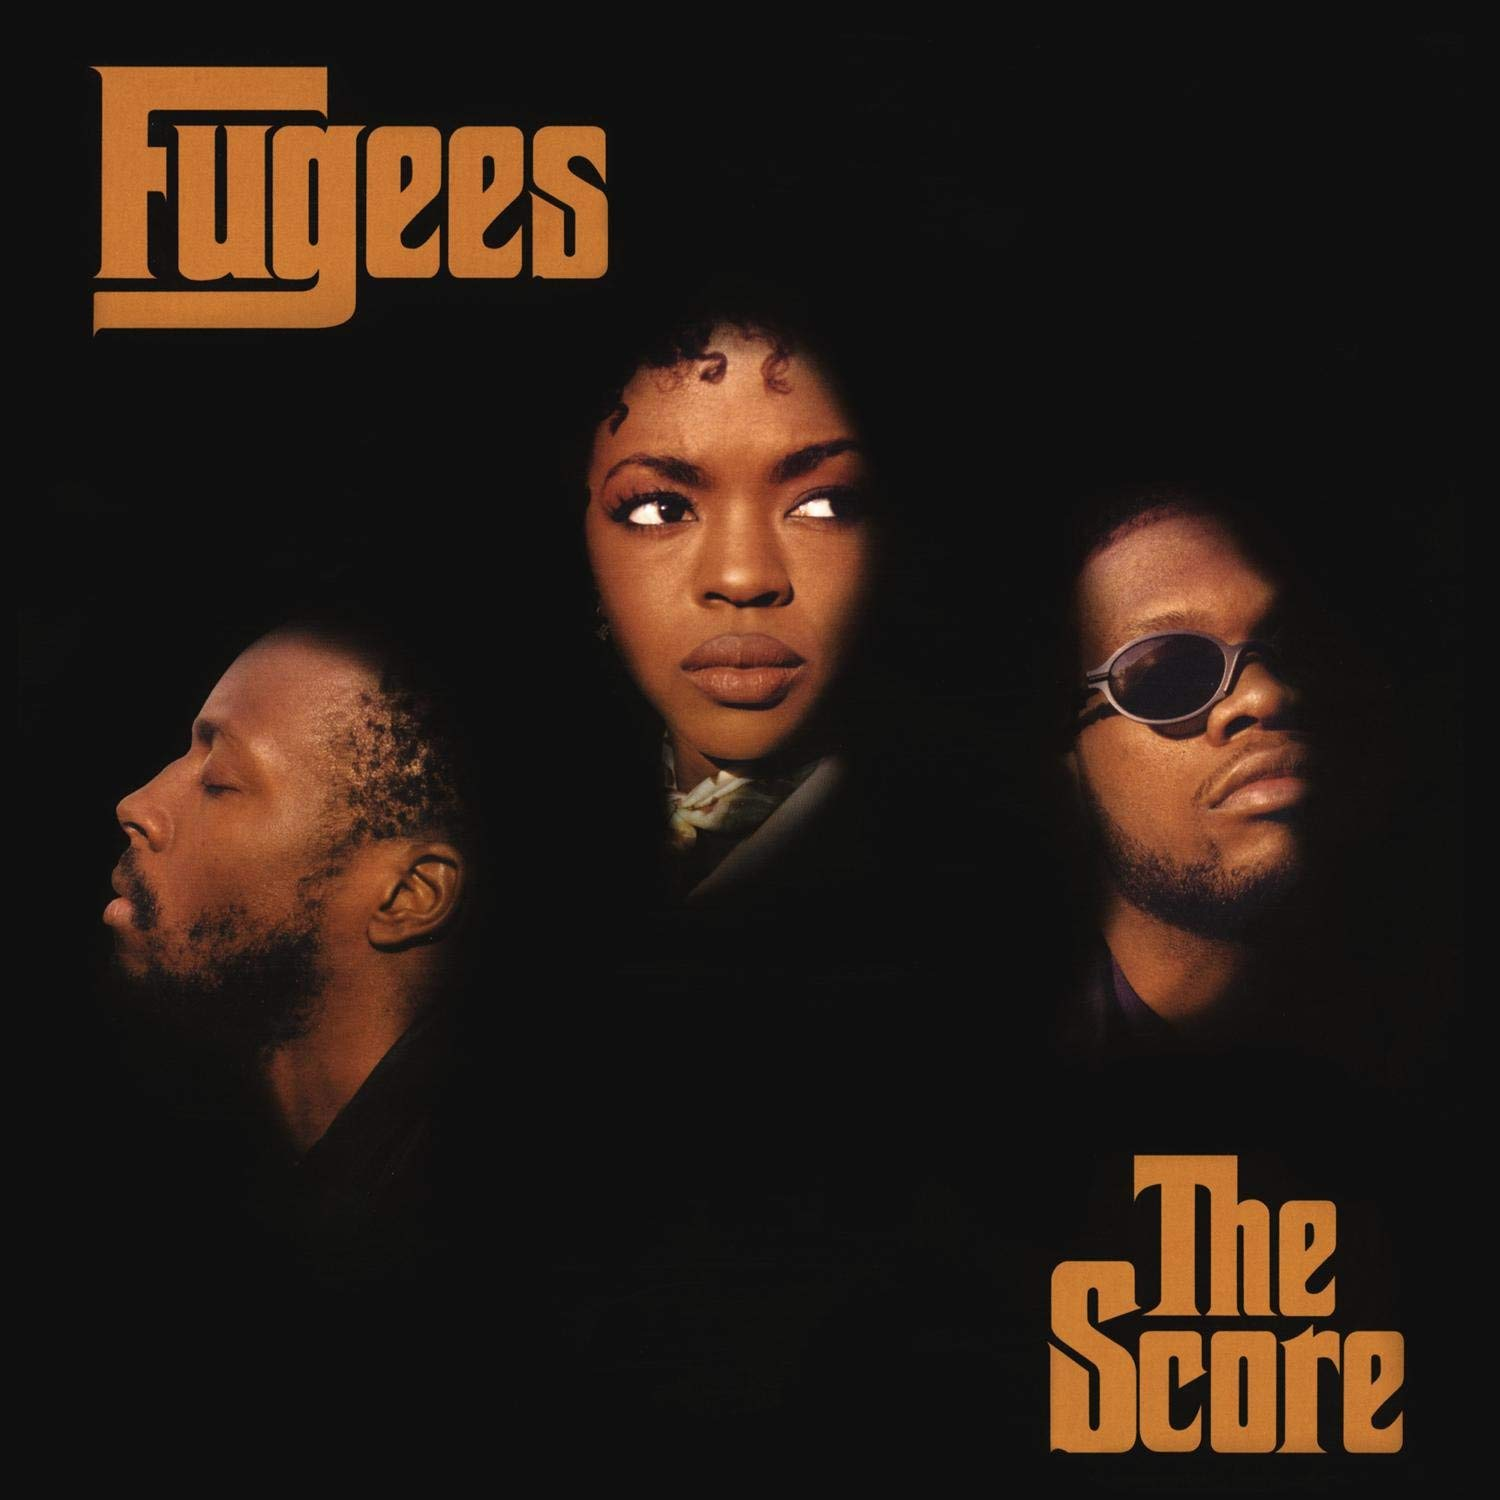 THE FUGEES   The Score, 1996, Salaam Remi, John Forte, Diamond D, Jerry Duplessis, 60:52